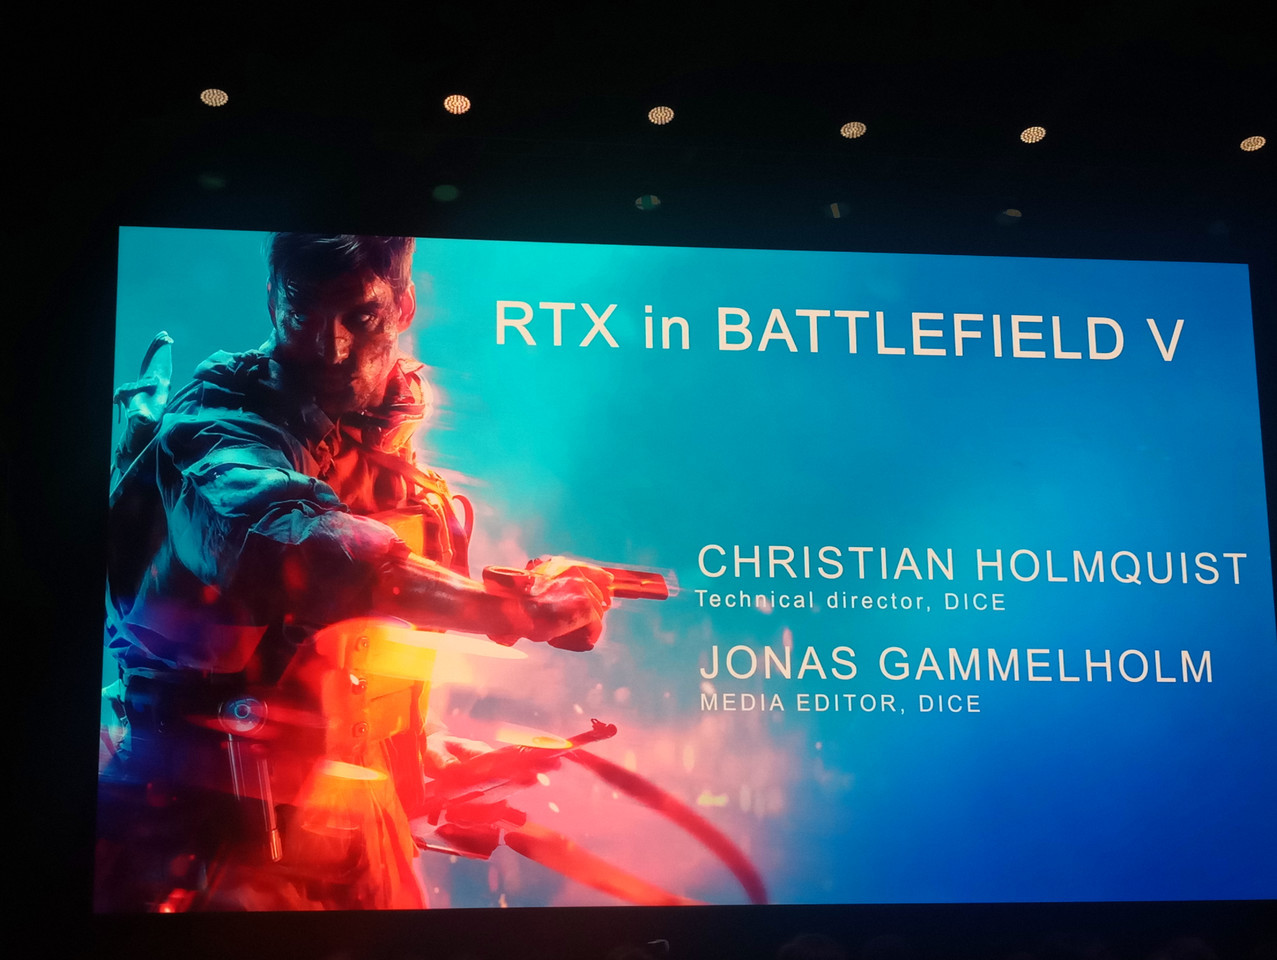 EA Delays Battlefield V Release by a Full Month - Available on